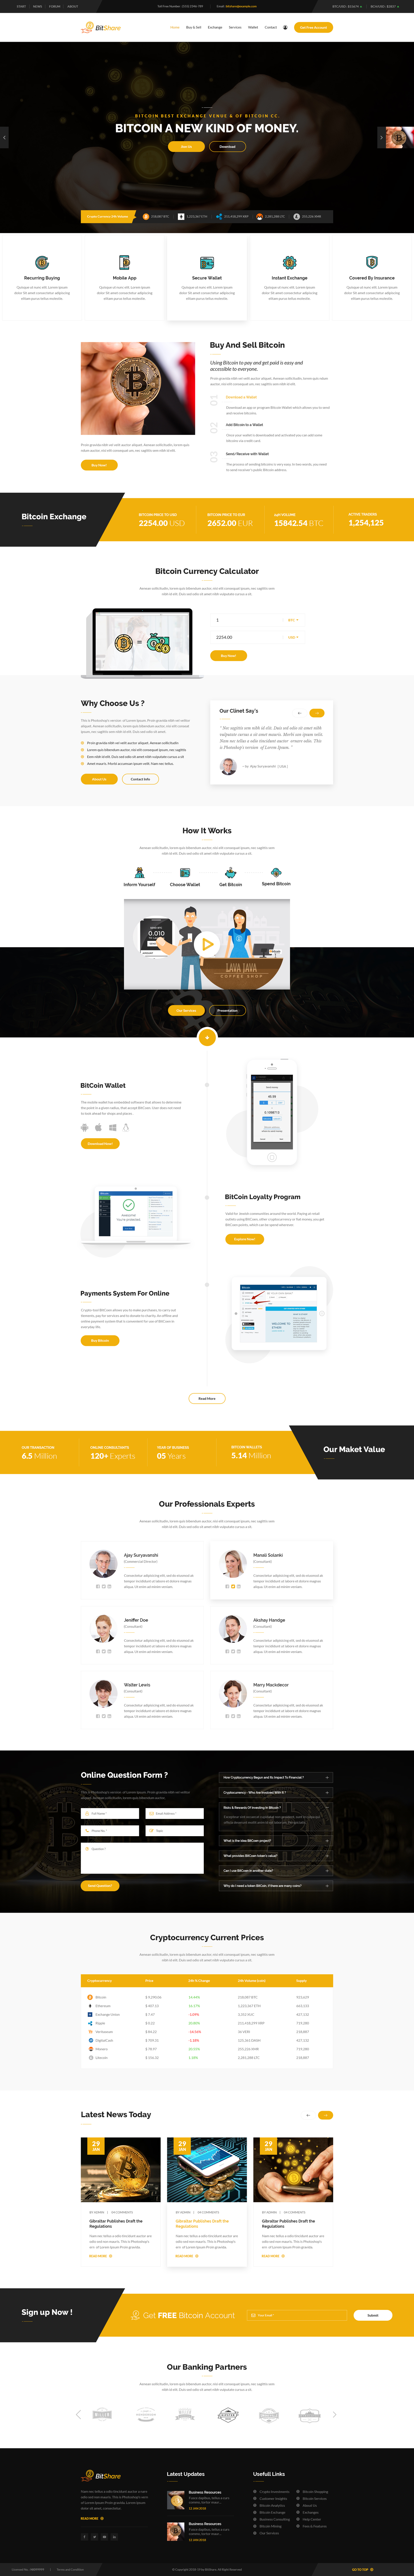 Bit Share - Bitcoin Crypto Currency PSD Template